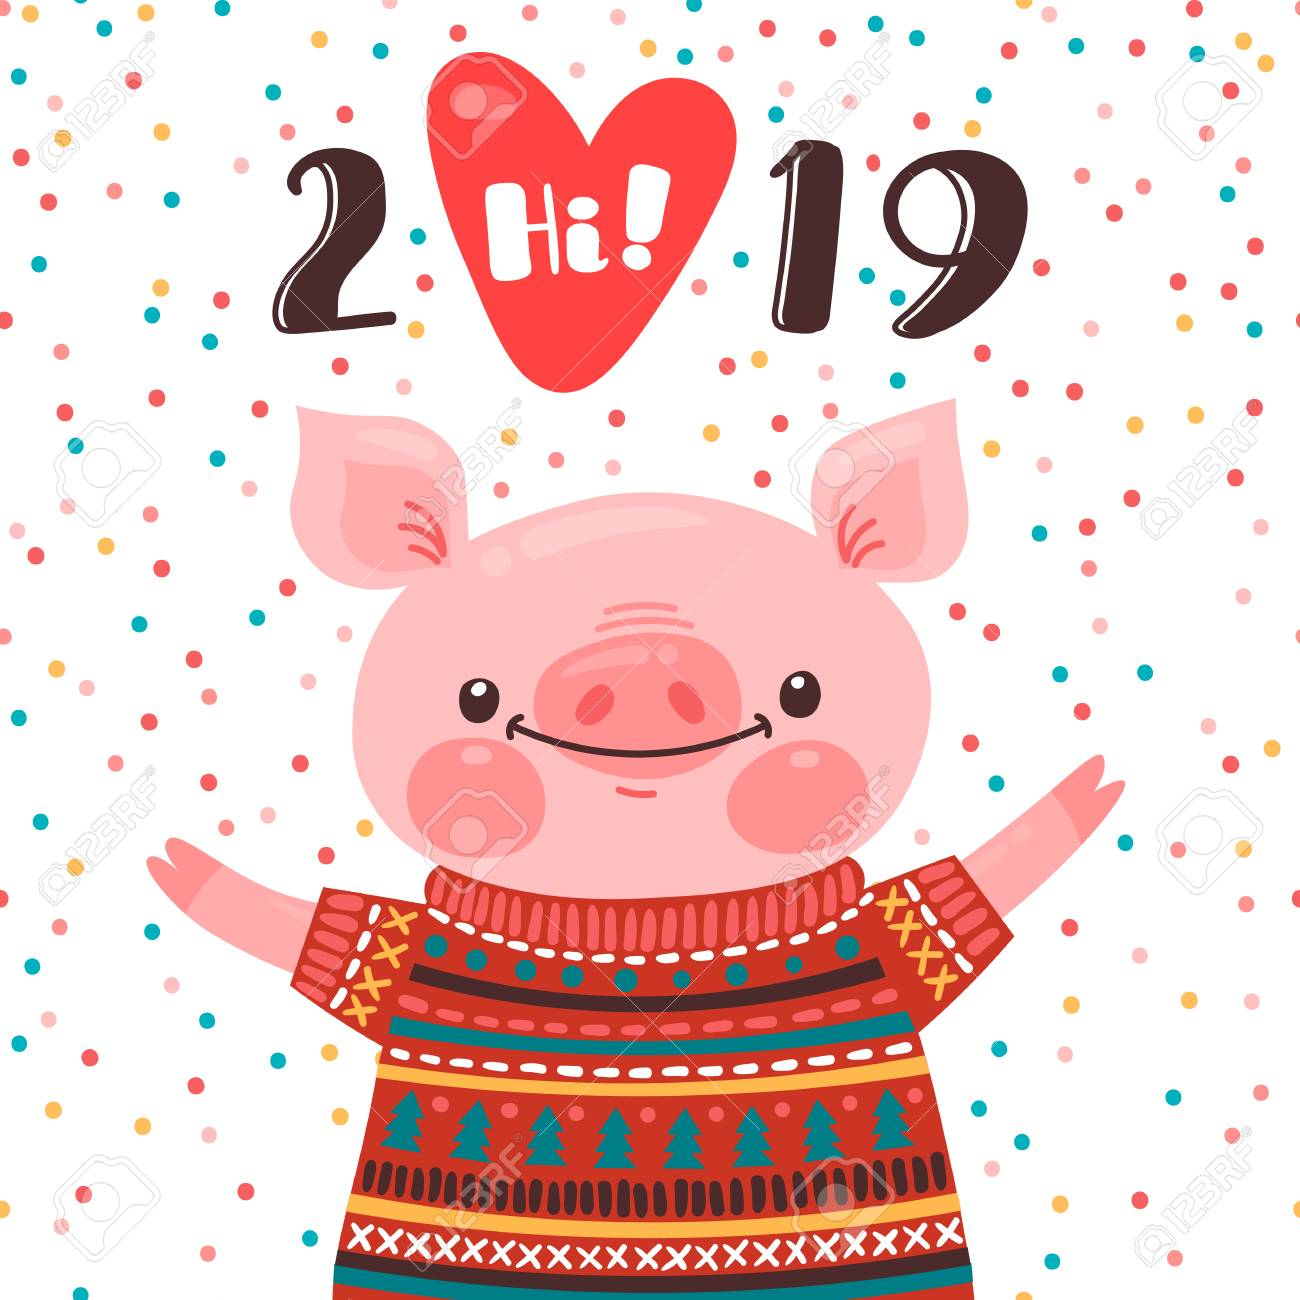 Calendario Vector 2019.2019 Happy New Year Card Design Symbol Of The Chinese Calendar